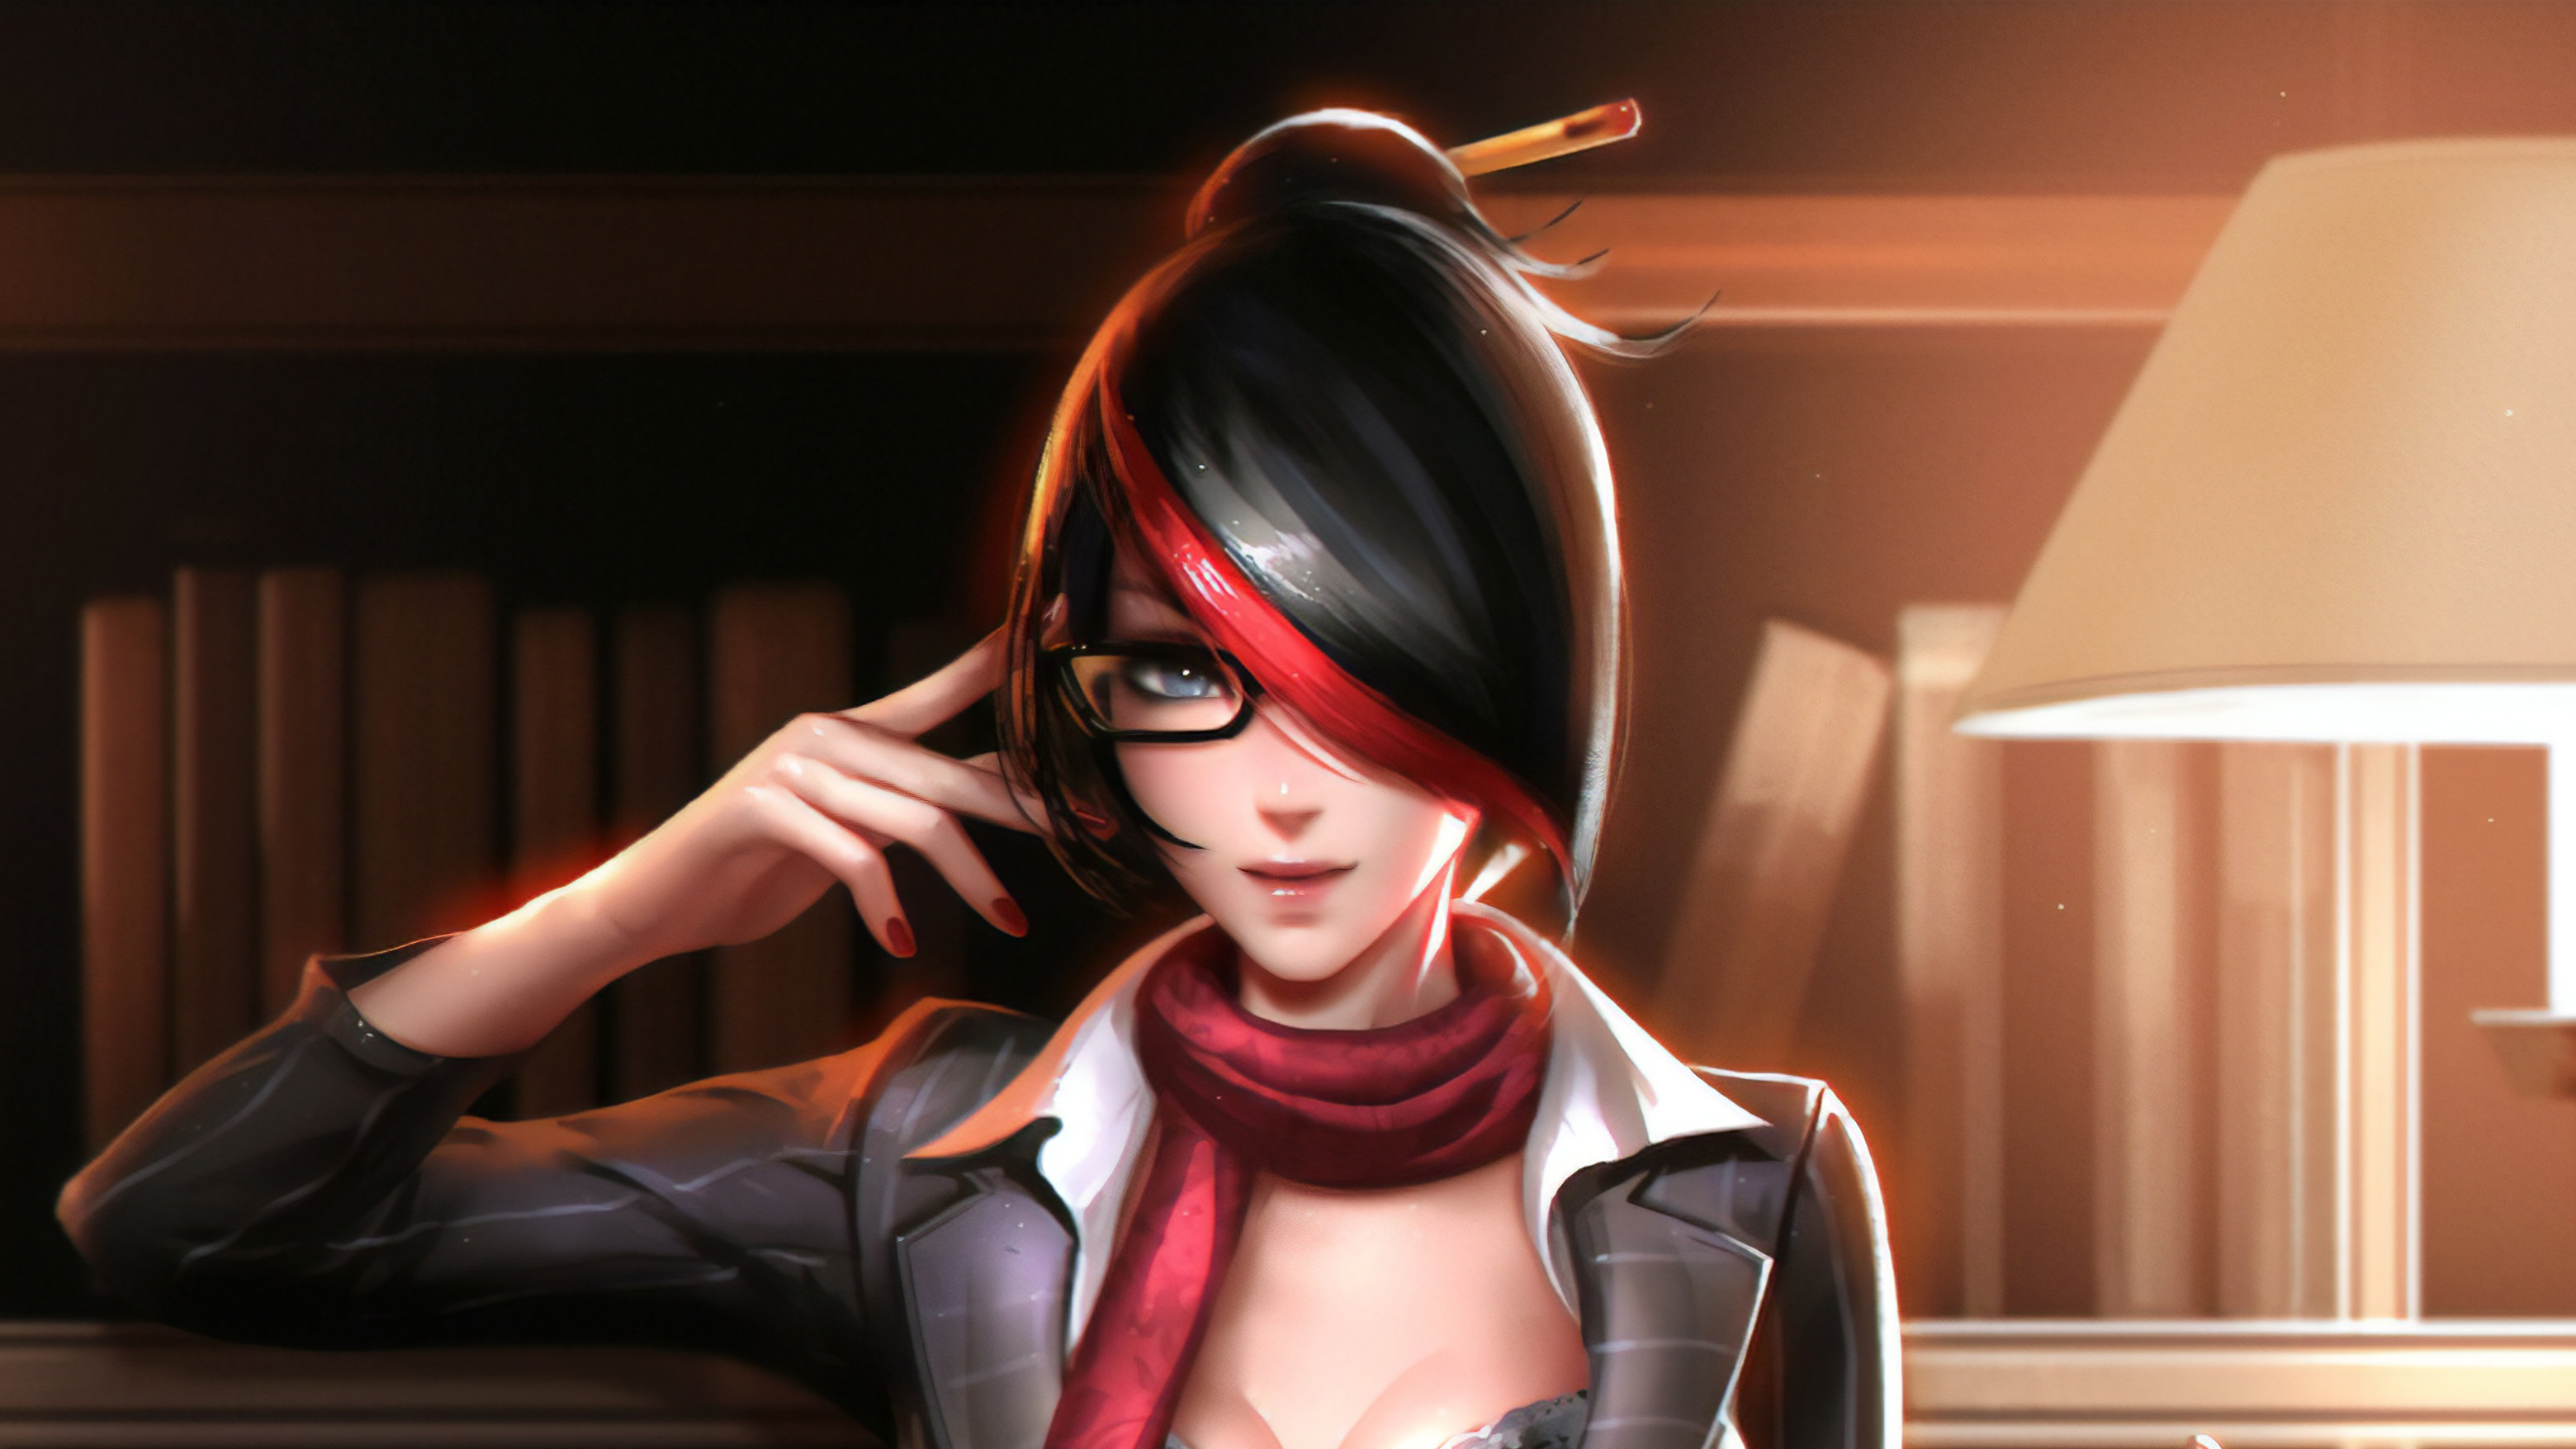 Fiora League Of Legends Fanart Hd Games 4k Wallpapers Images